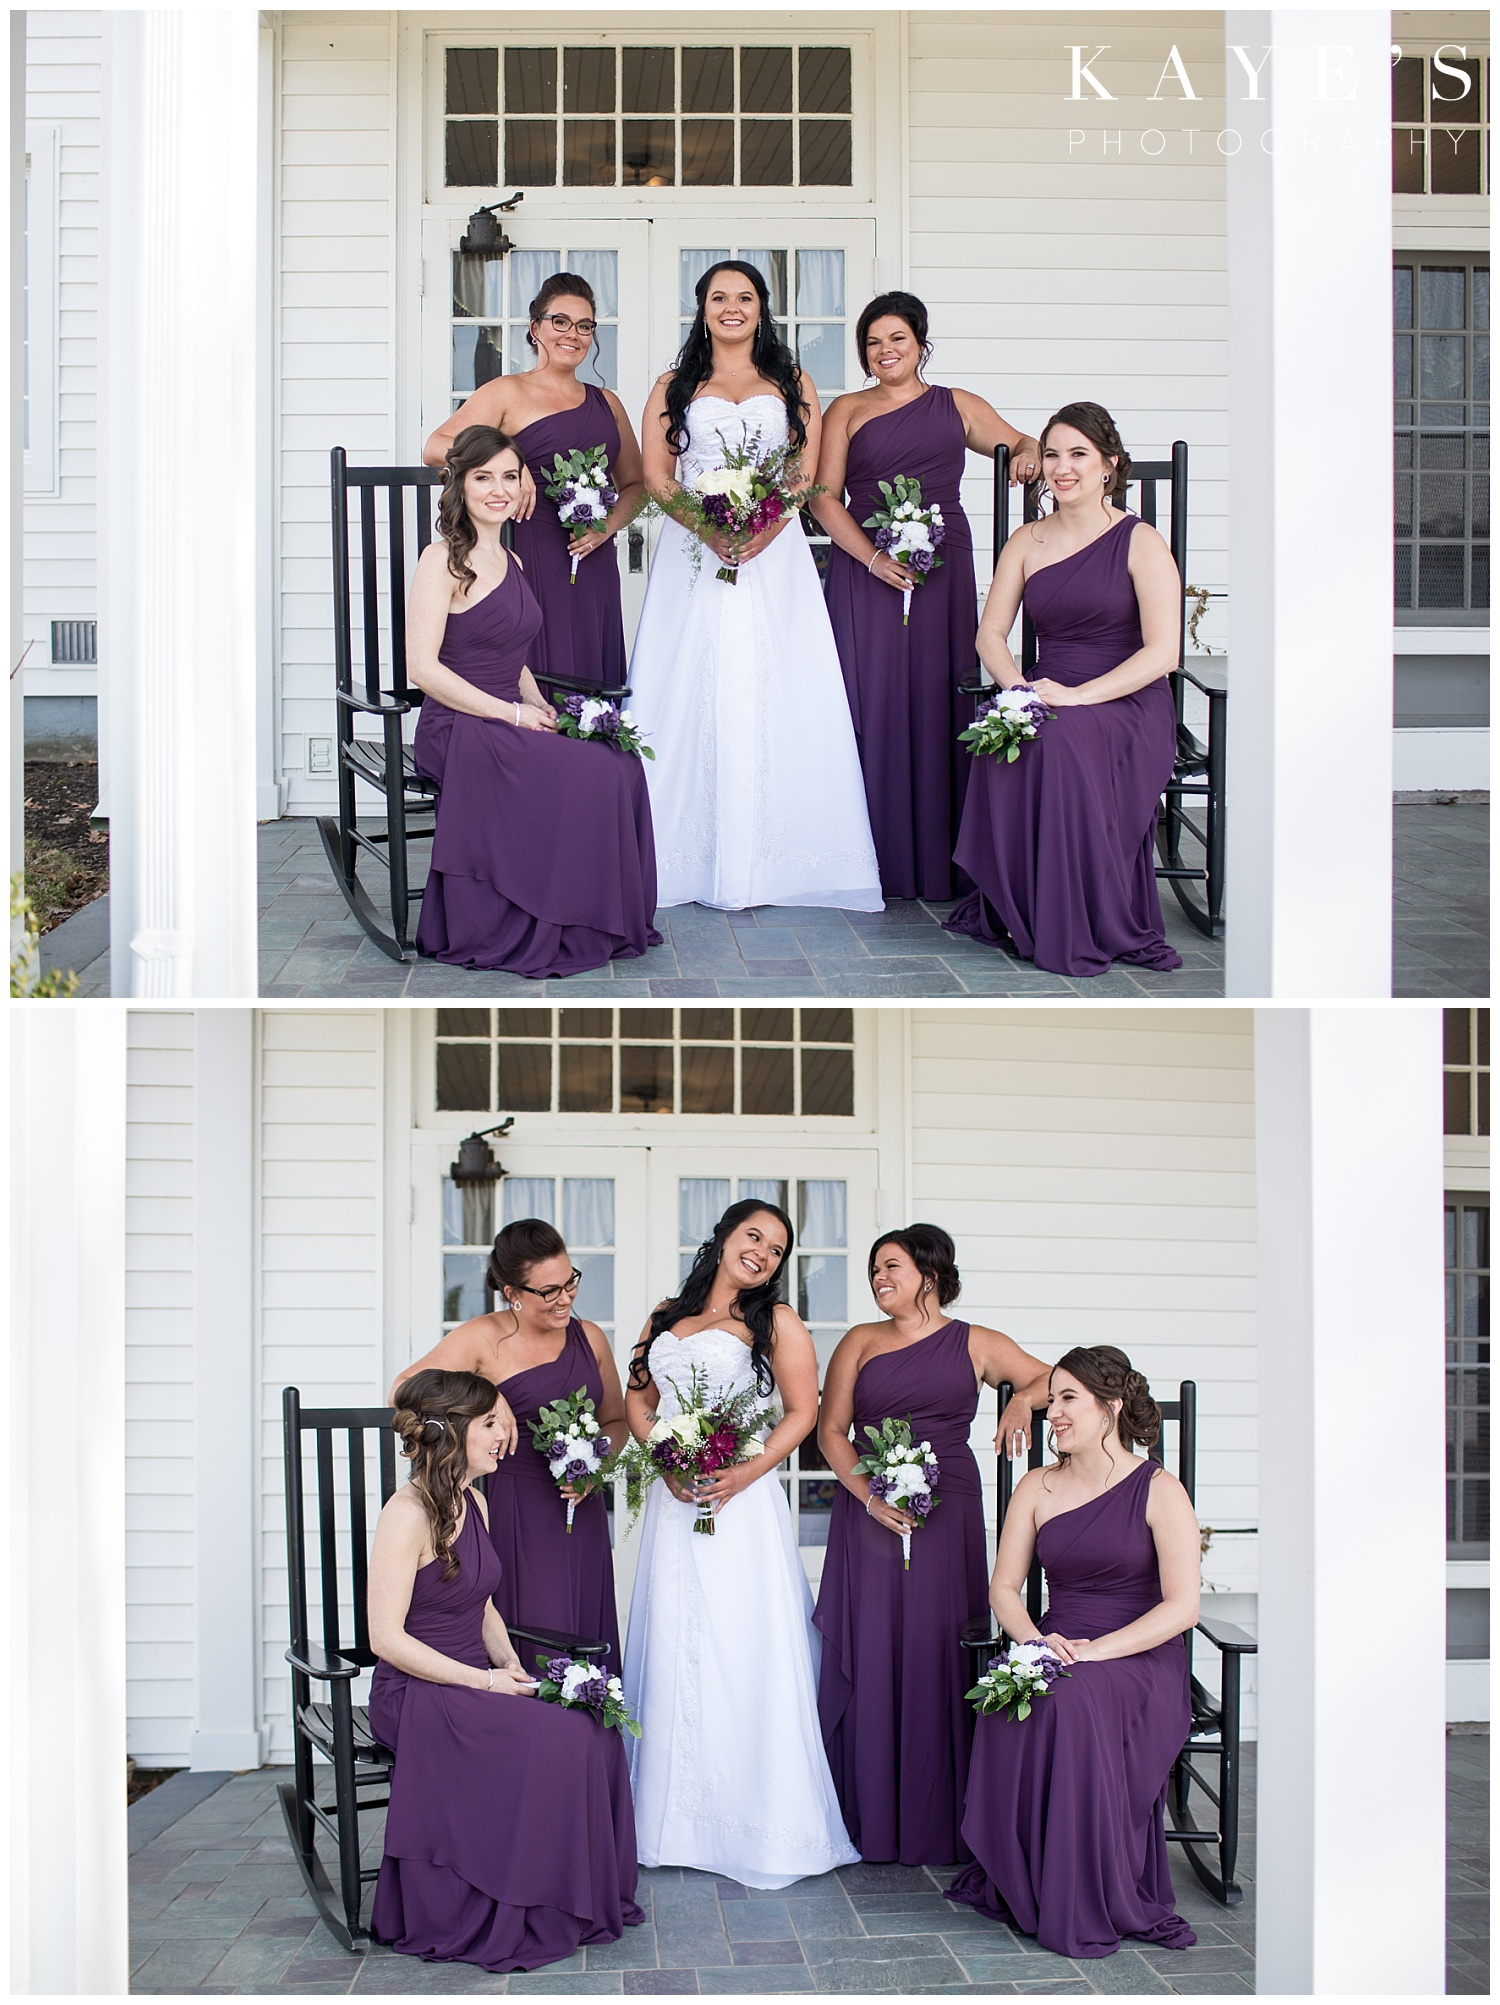 bride and bridesmaid pictures at waldenwoods in purple